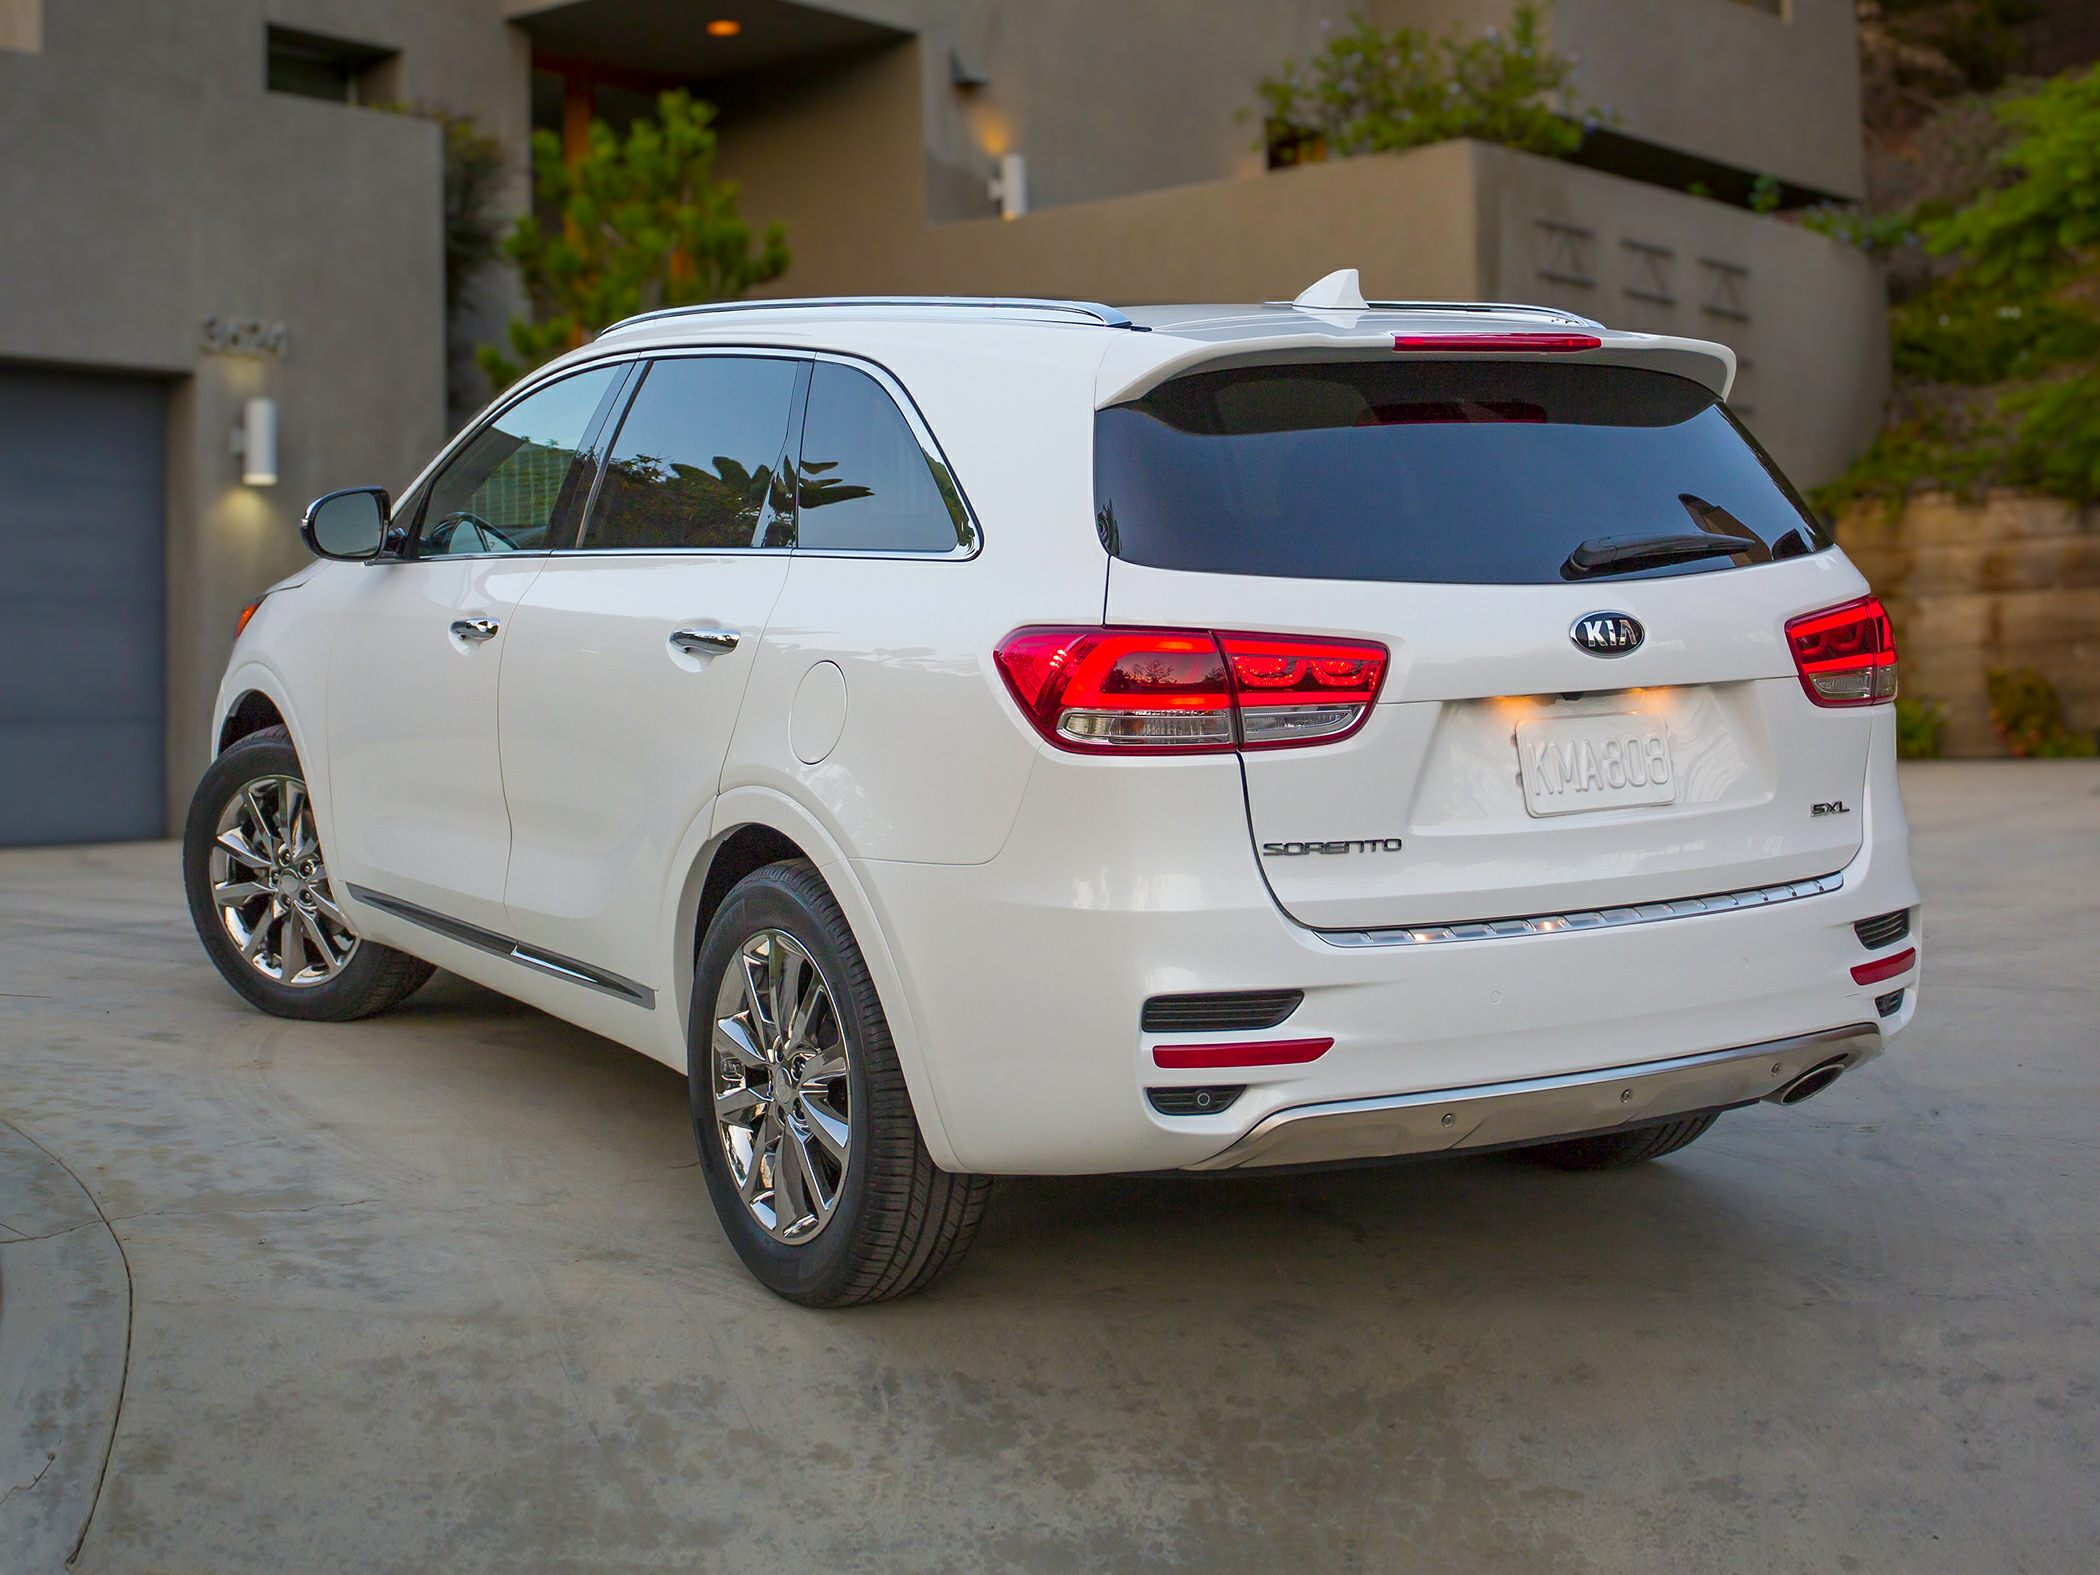 2017 kia sorento deals prices incentives leases overview carsdirect. Black Bedroom Furniture Sets. Home Design Ideas